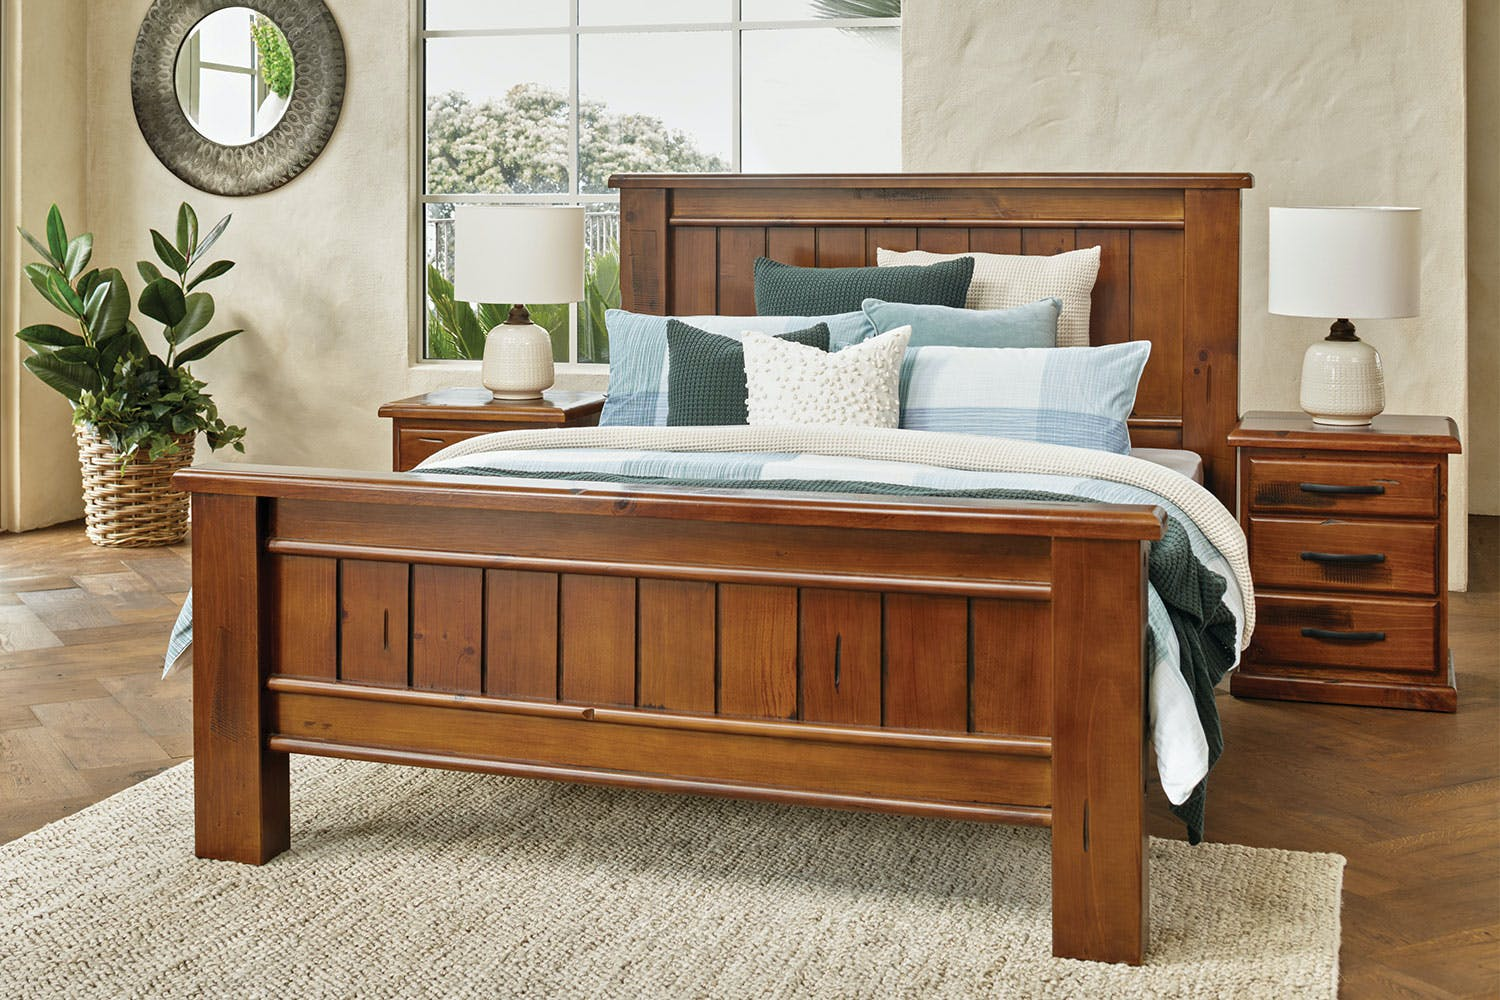 Rye Queen Bed Frame by John Young Furniture